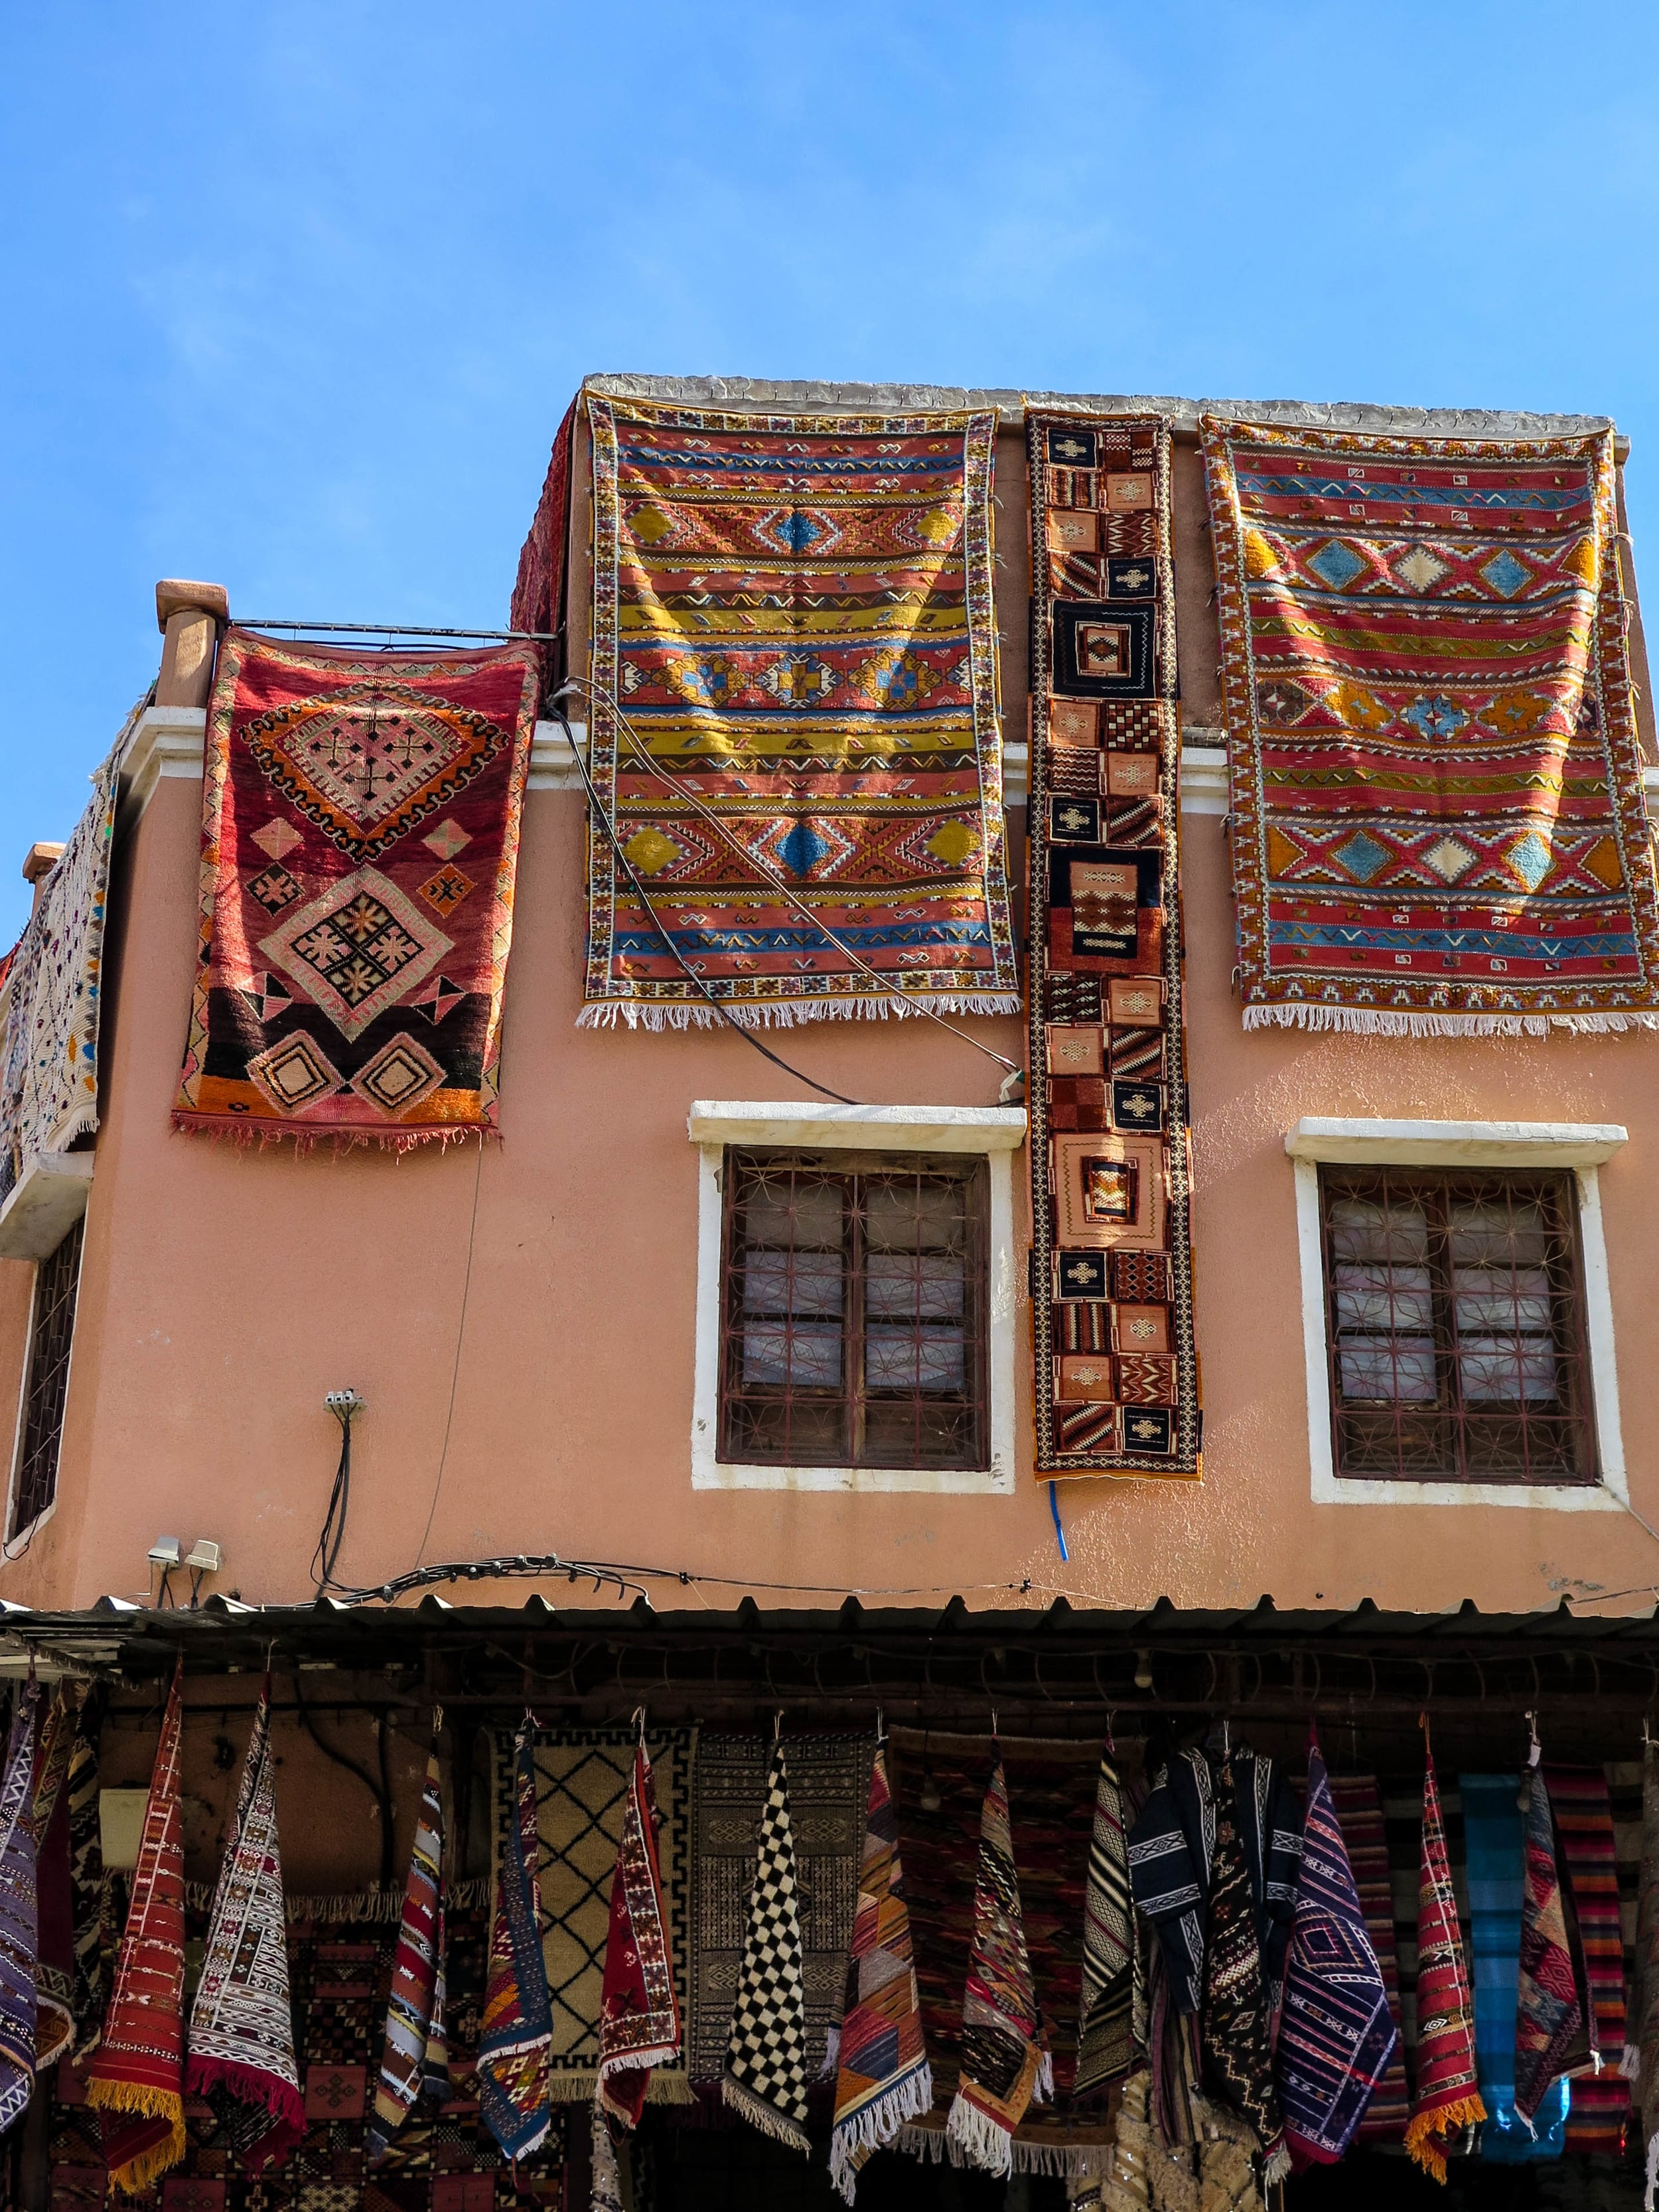 Morocco is known for it's Berber rugs. Many people come here to buy these unique rugs..